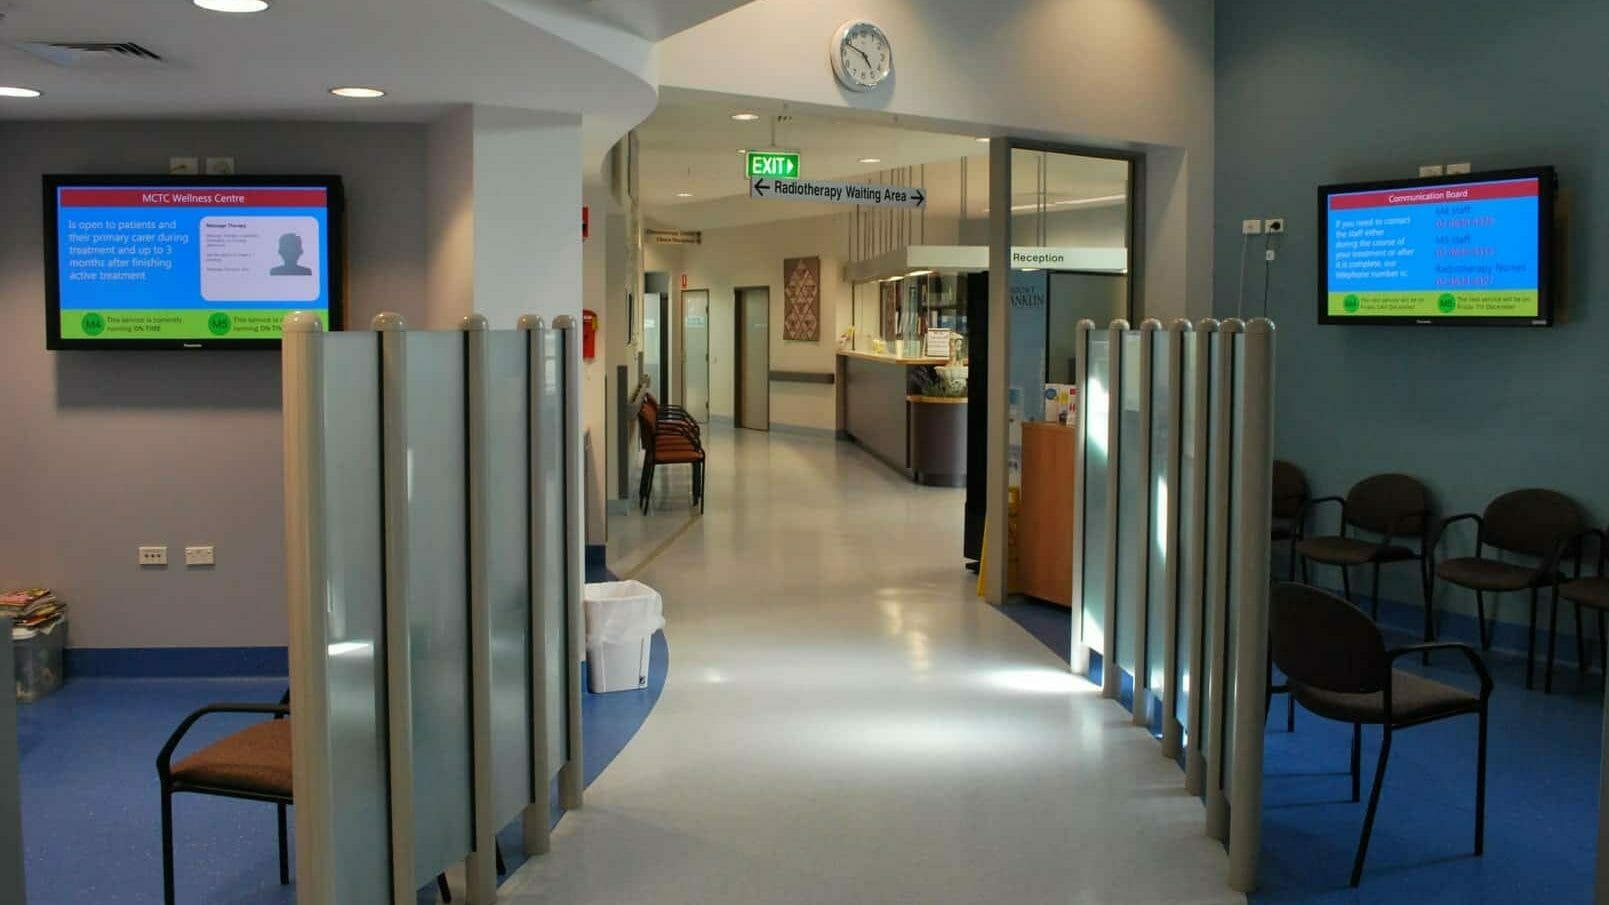 Advertise Me Digital Signage Cancer Therapy Centre Medical Boards 5 e1566347747943